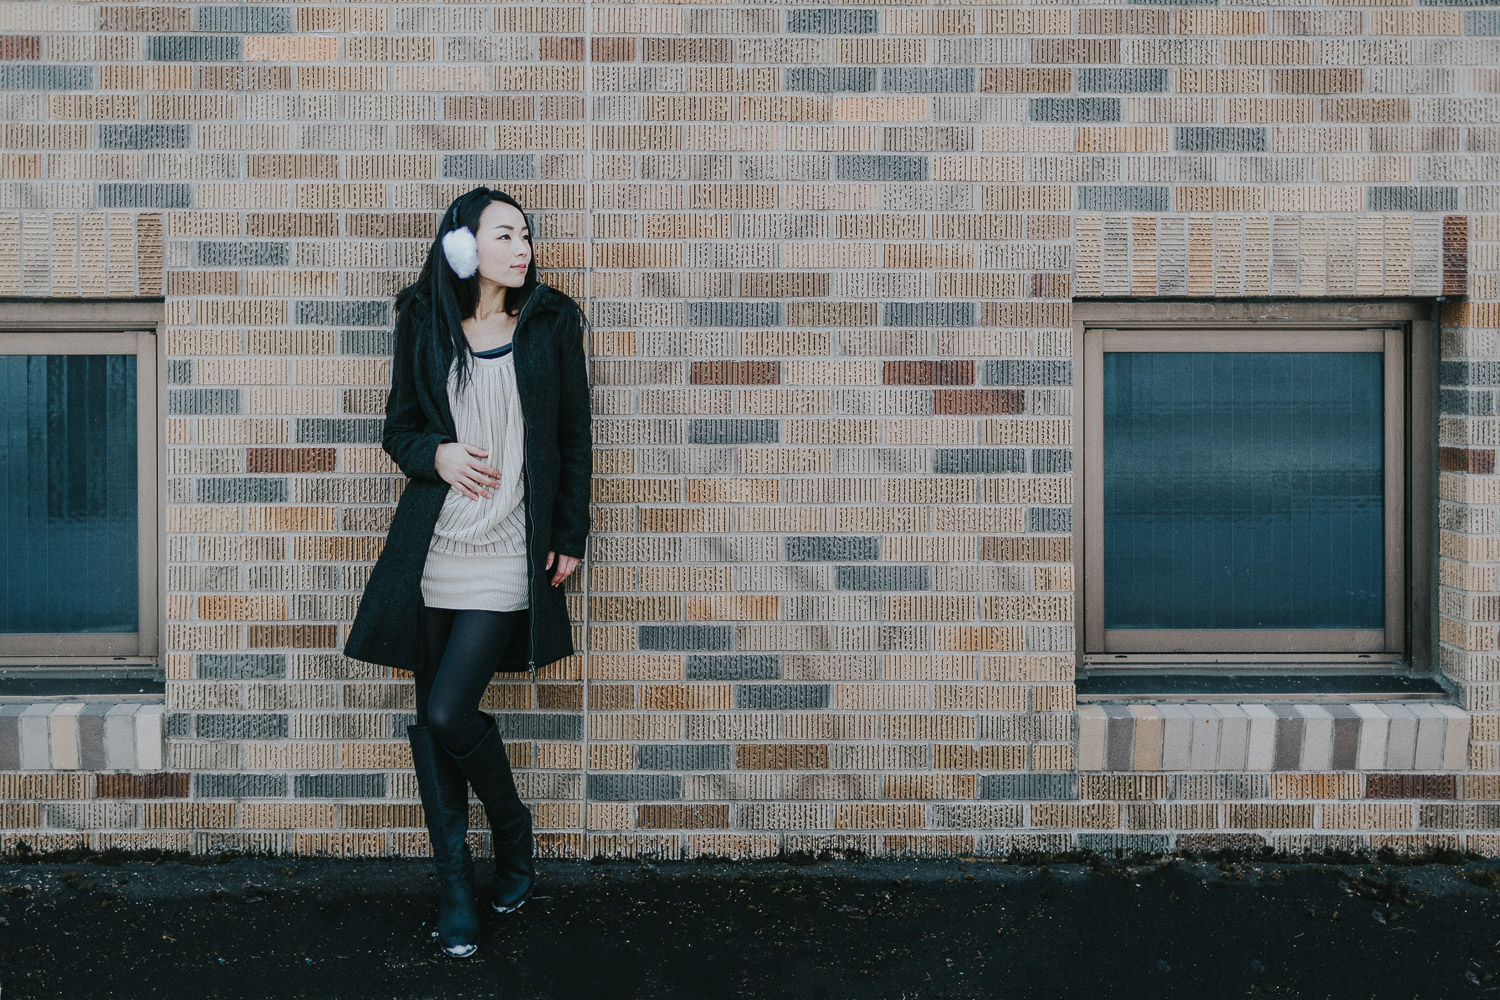 Image of a girl stands in front of the wall